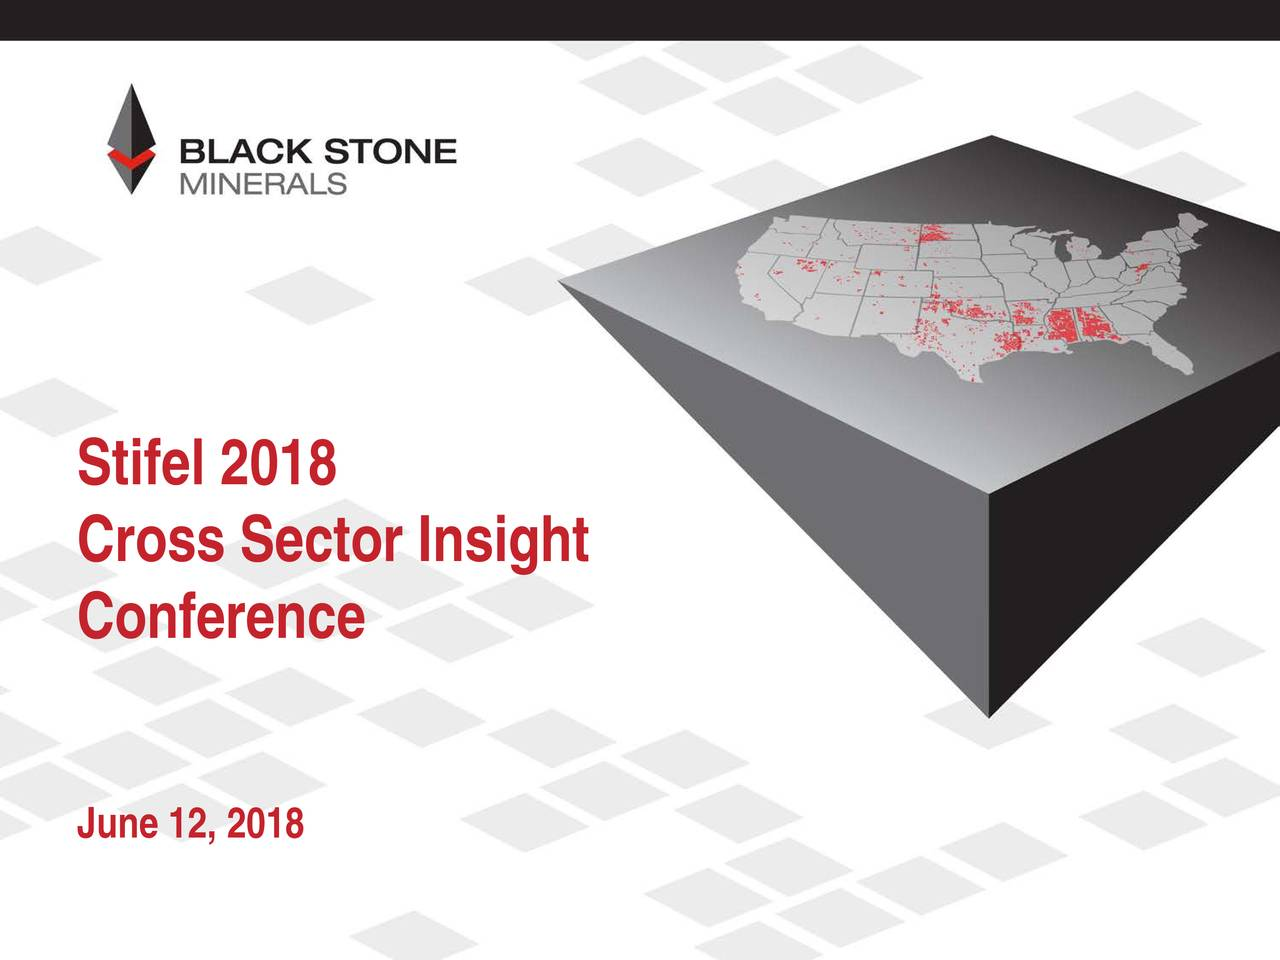 Cross Sector Insight Conference June 12, 2018